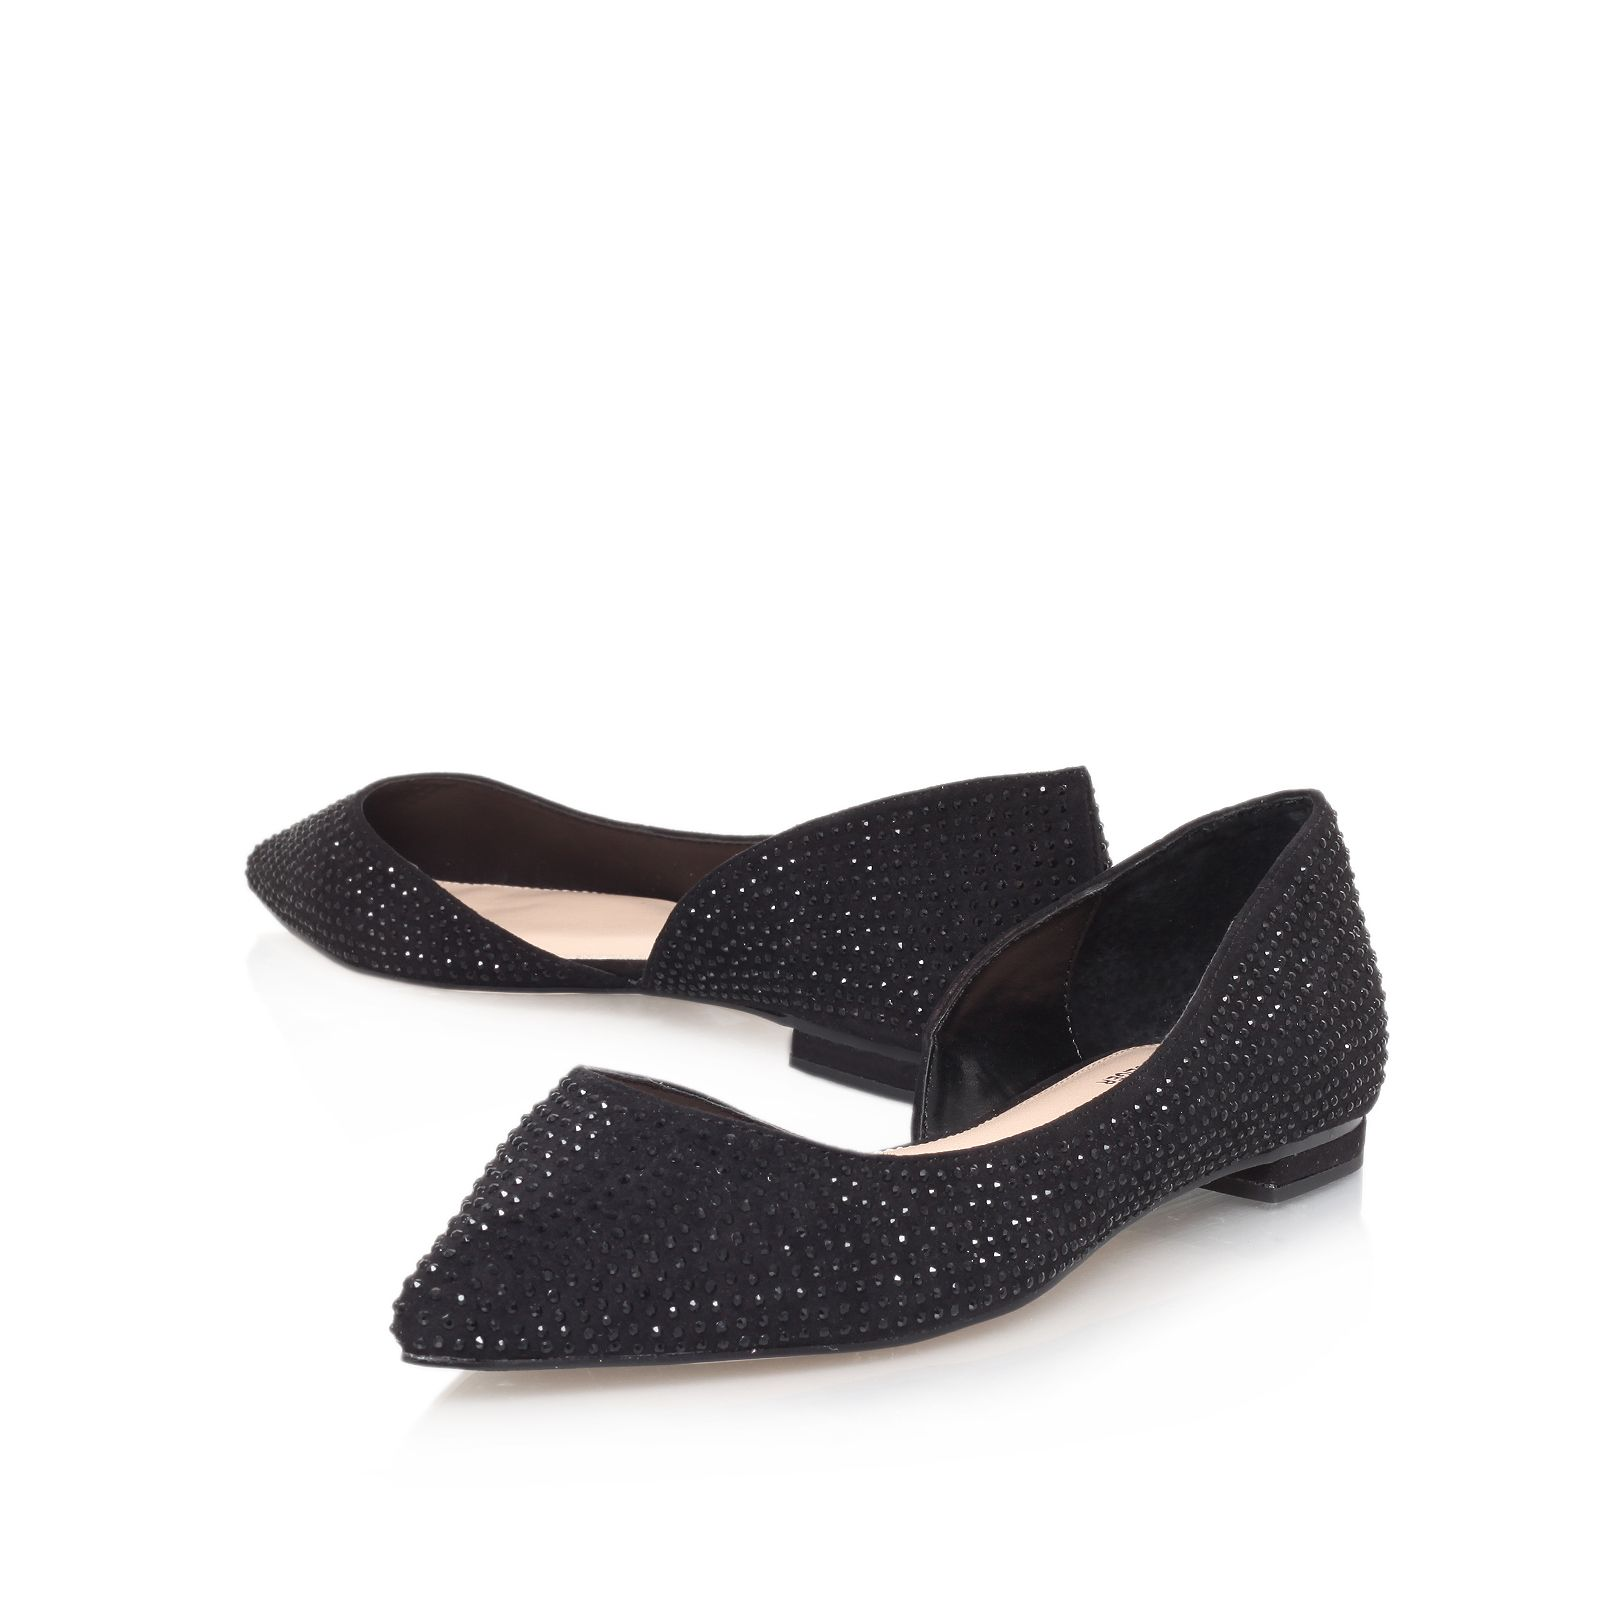 Lush flat slipper shoes